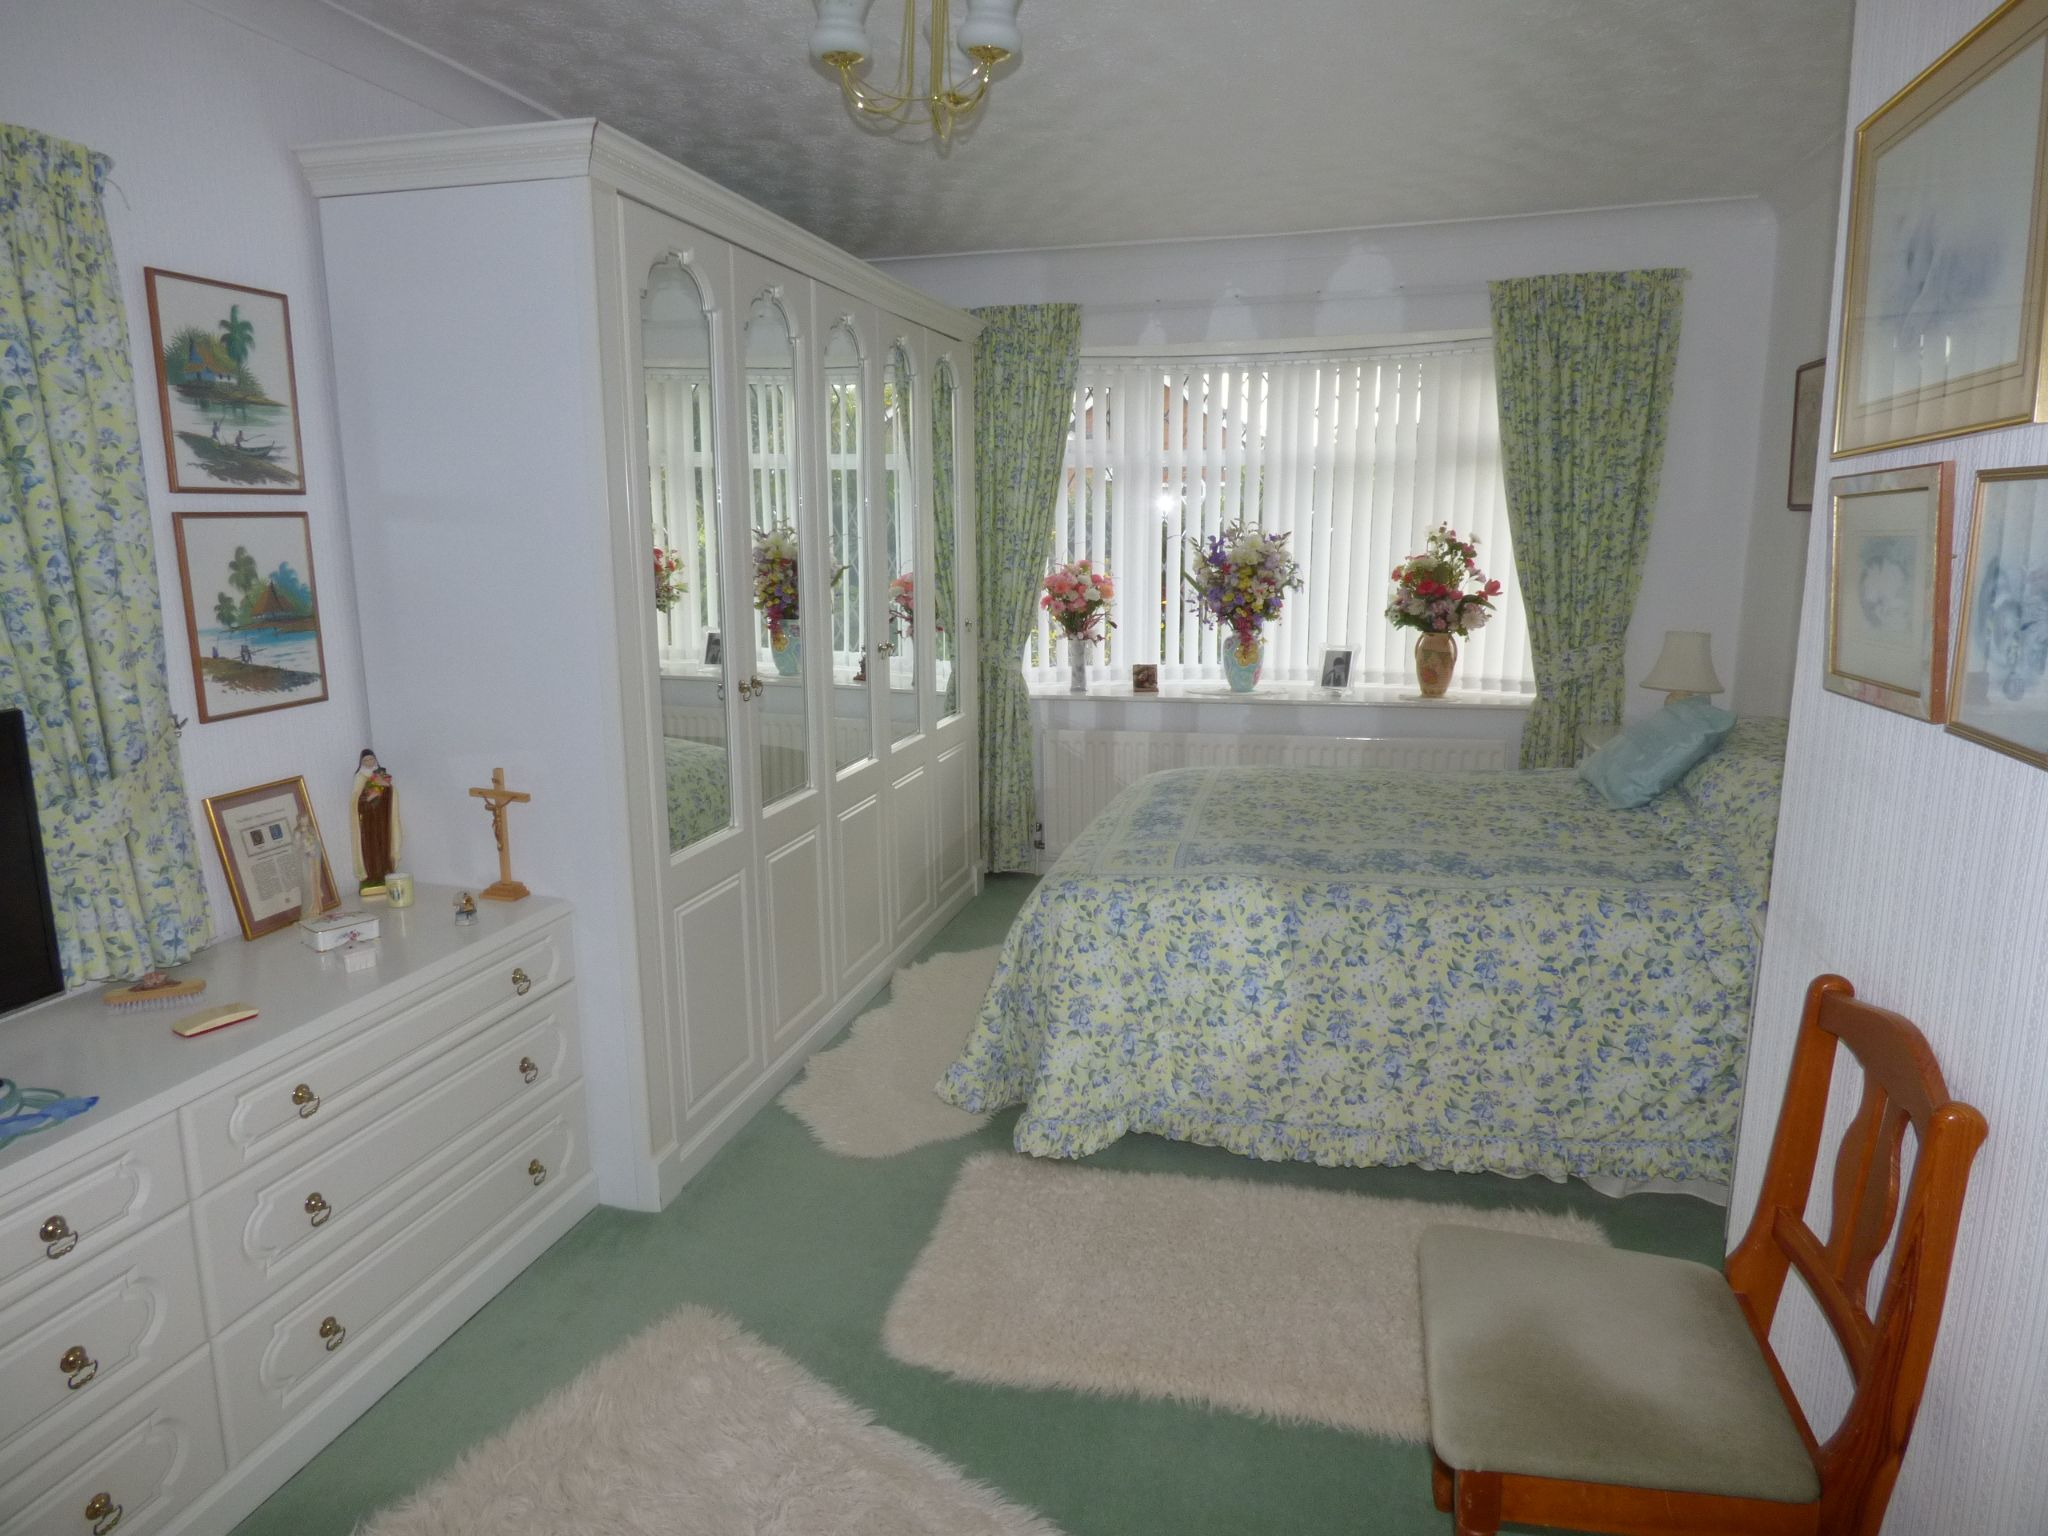 4 Bedroom Detached Bungalow For Sale - Photograph 9